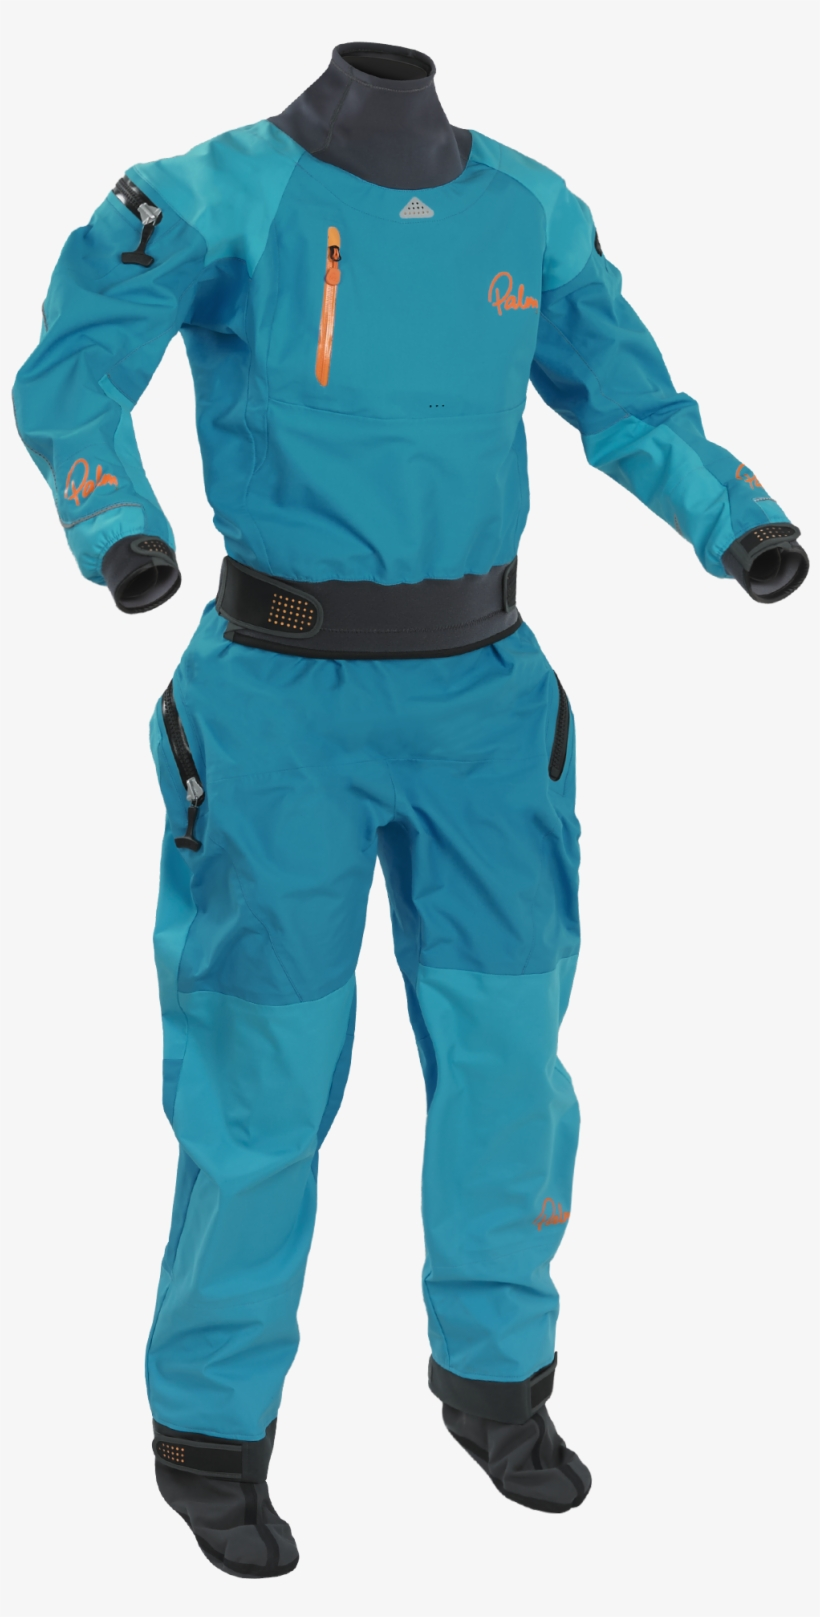 Home Whitewater Clothing Palm Equipment Drysuits Palm - Palm Womens Drysuit, transparent png #8011935